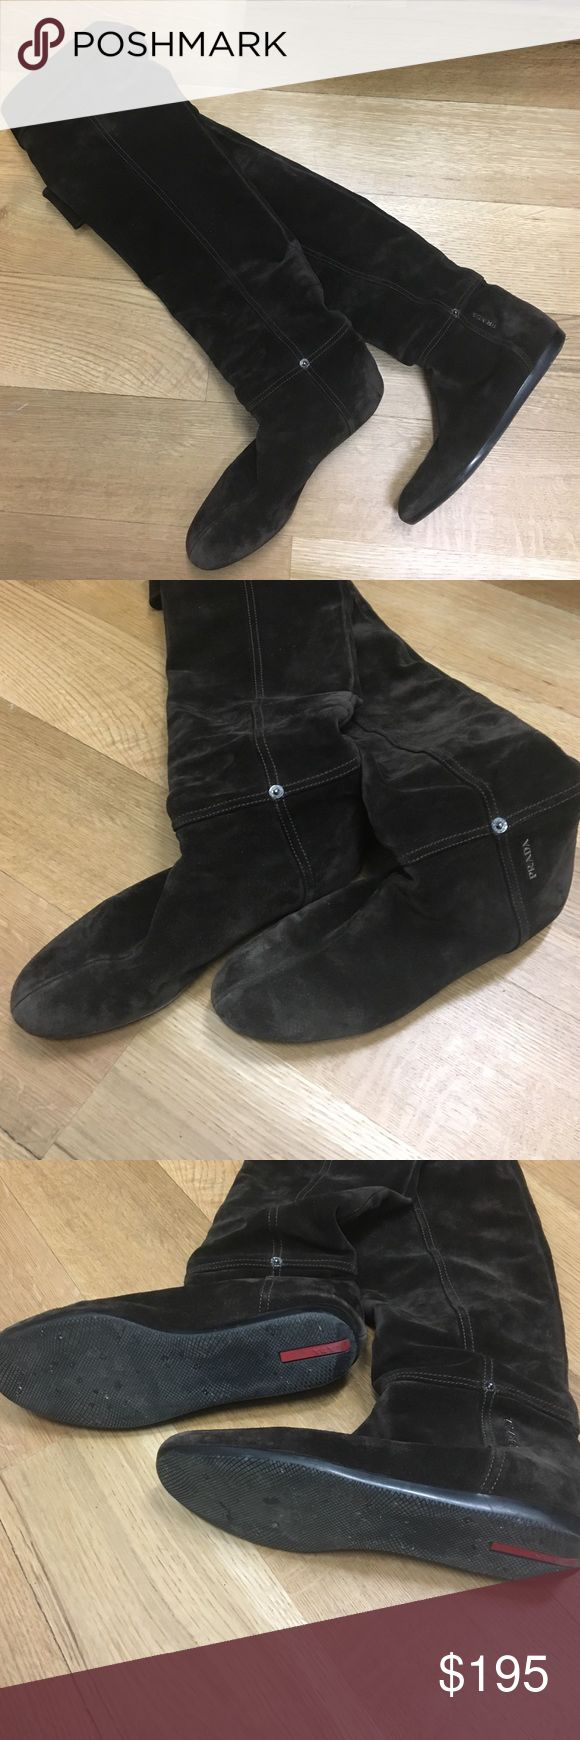 Prada brown suede over the knee boots! Amazing Prada brown suede over the knee boots! These are beautiful! Prada Shoes Over the Knee Boots